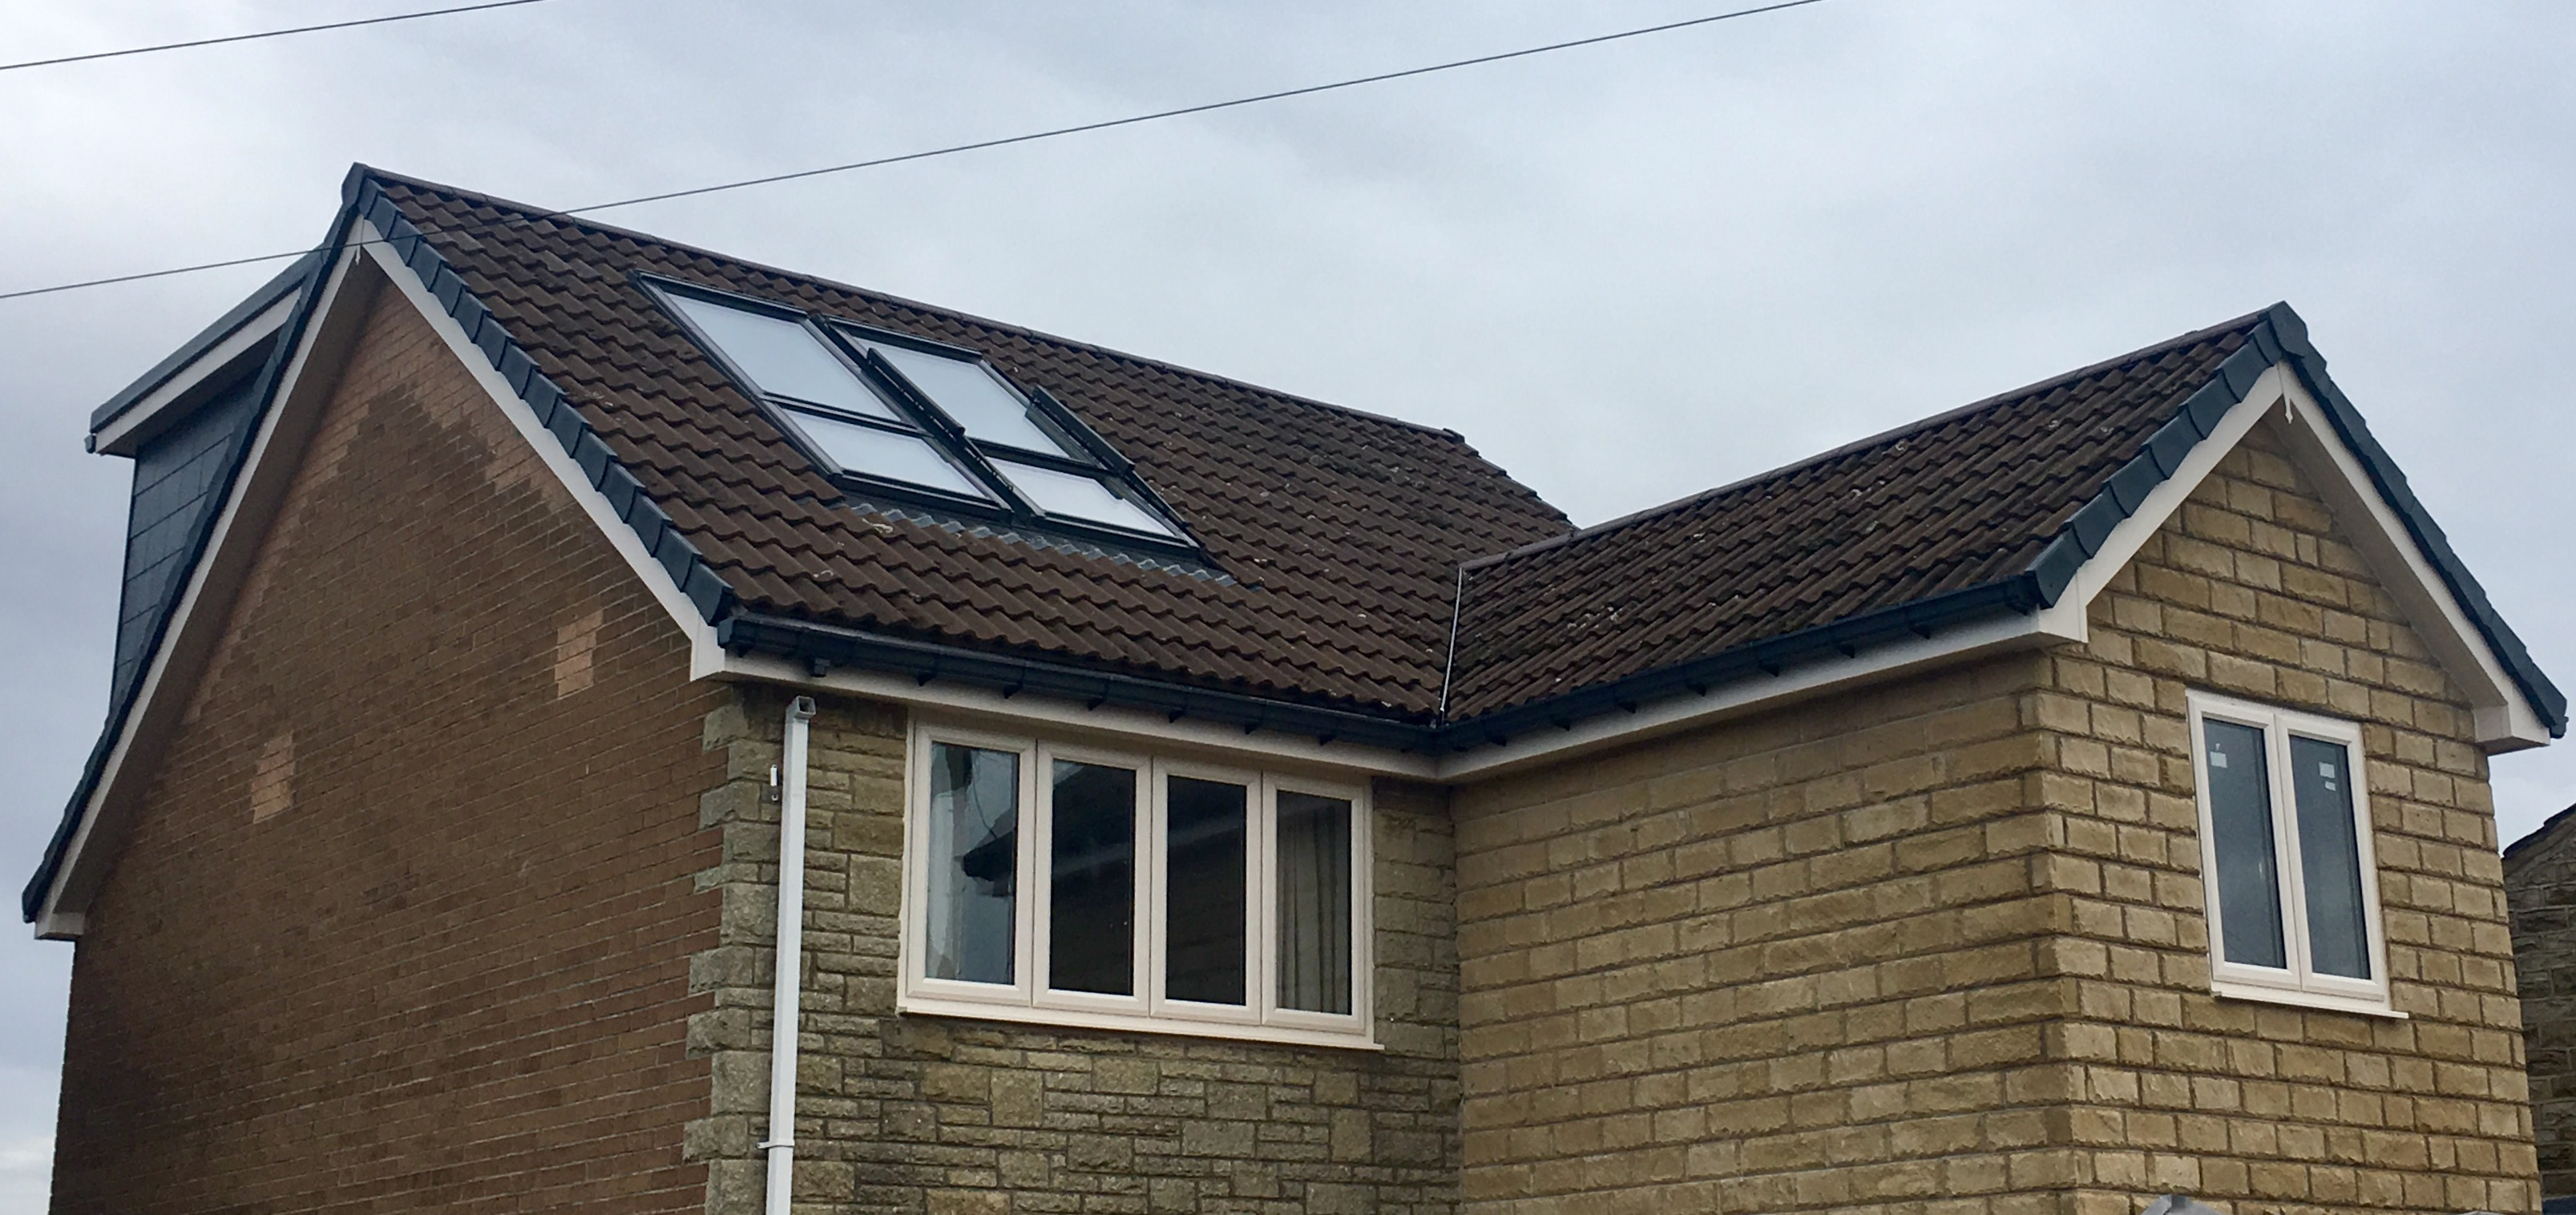 house extension example showing dormer room